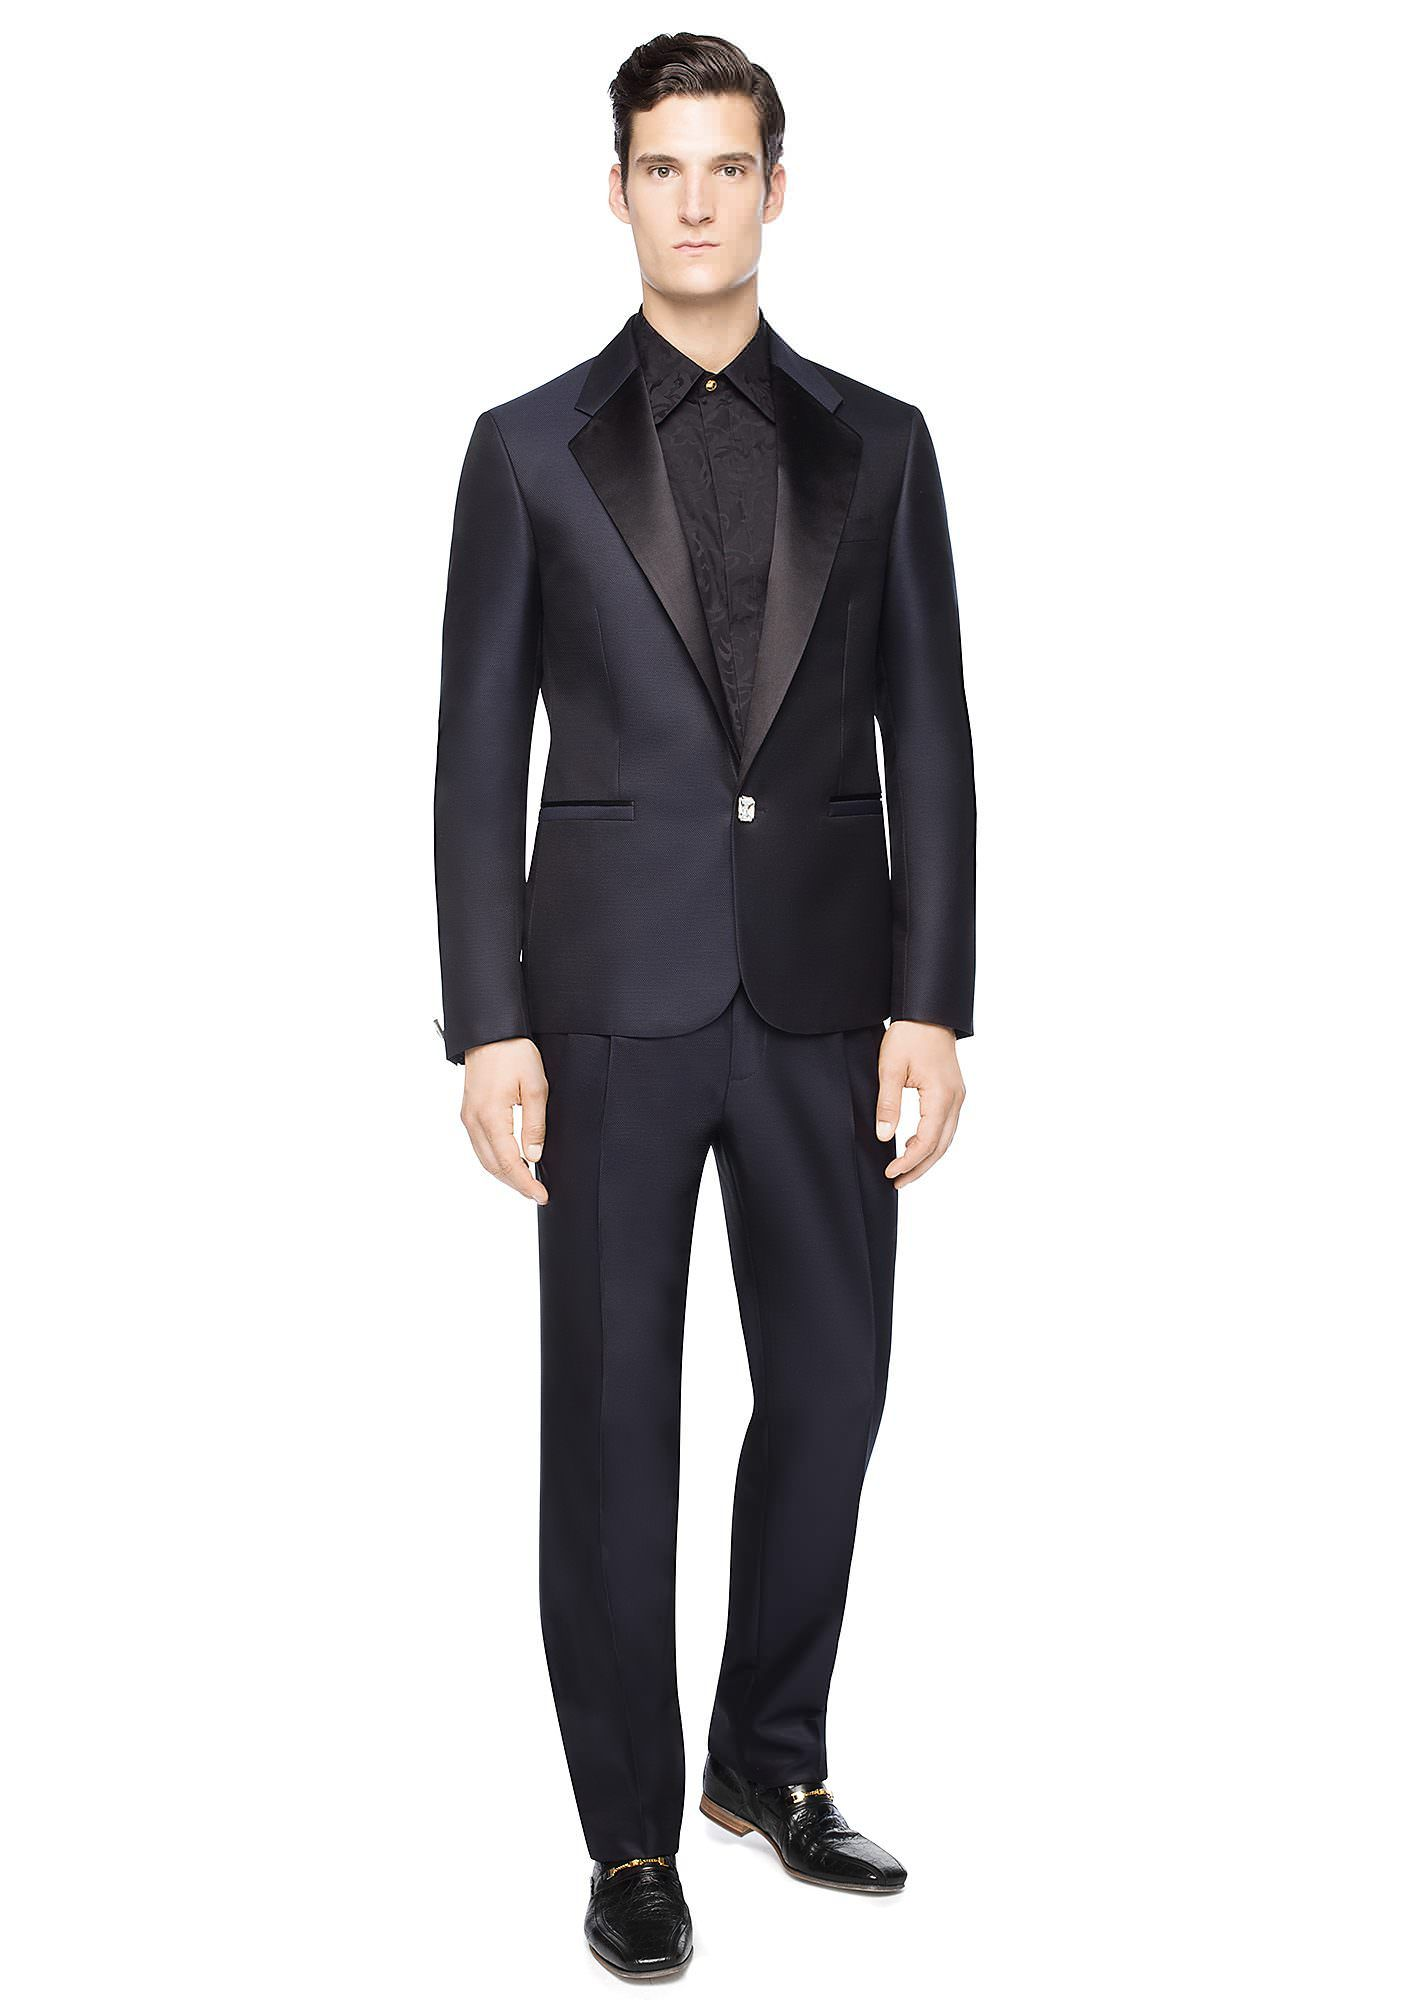 81bb932b Versace Silk-Wool Jacquard Suit | Men's Versace Clothing | Silk wool ...